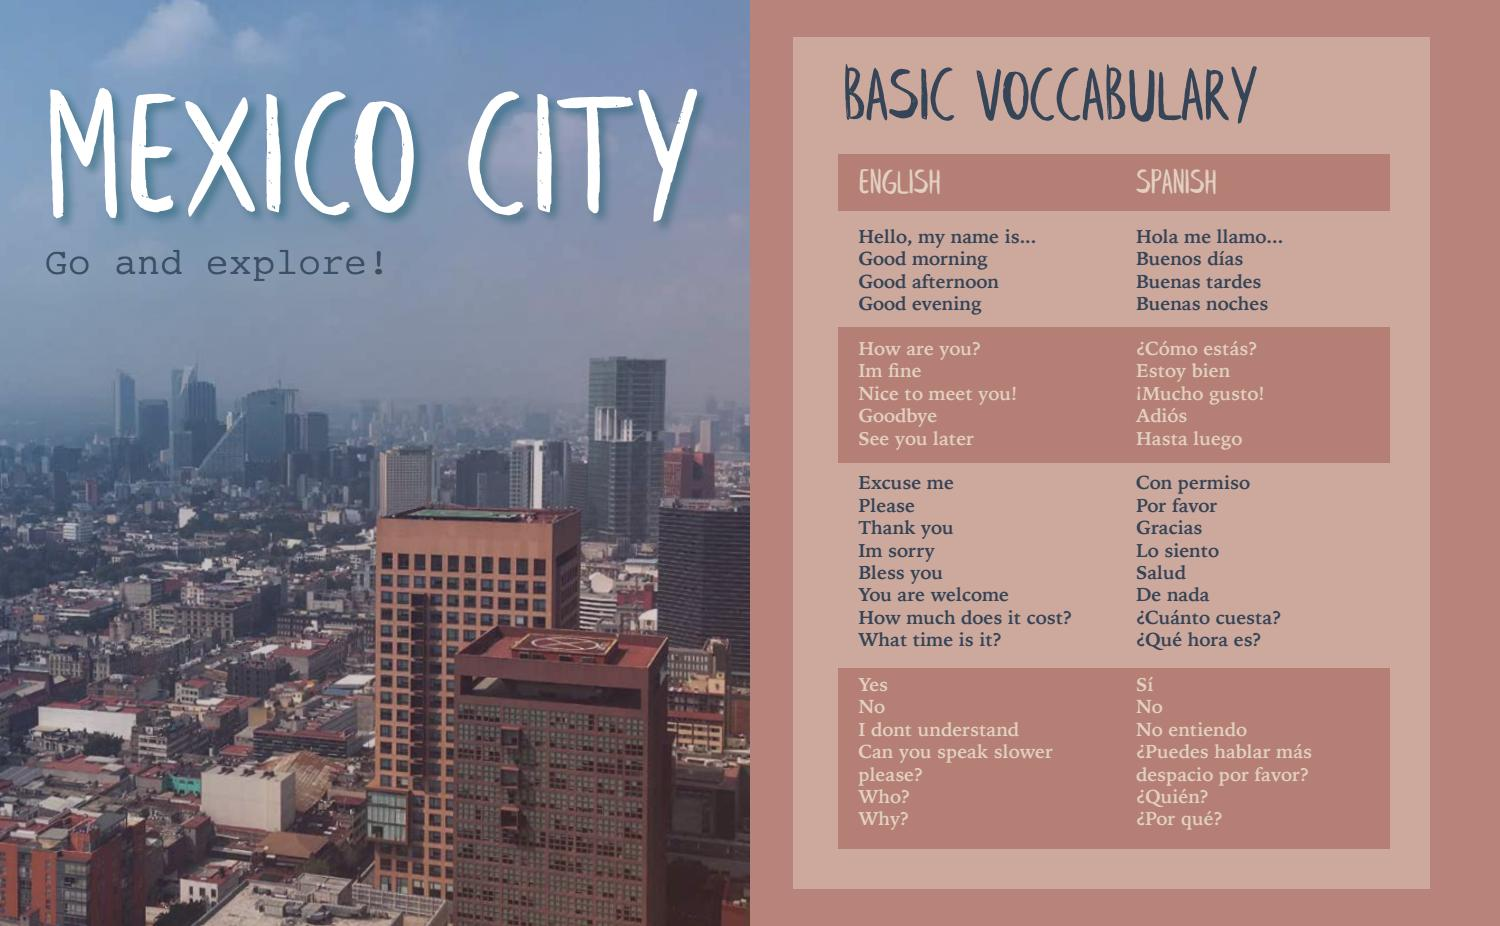 Mexico City Go And Explore By Veronika Rehm Issuu Use the illustrations and pronunciations below to get started. issuu